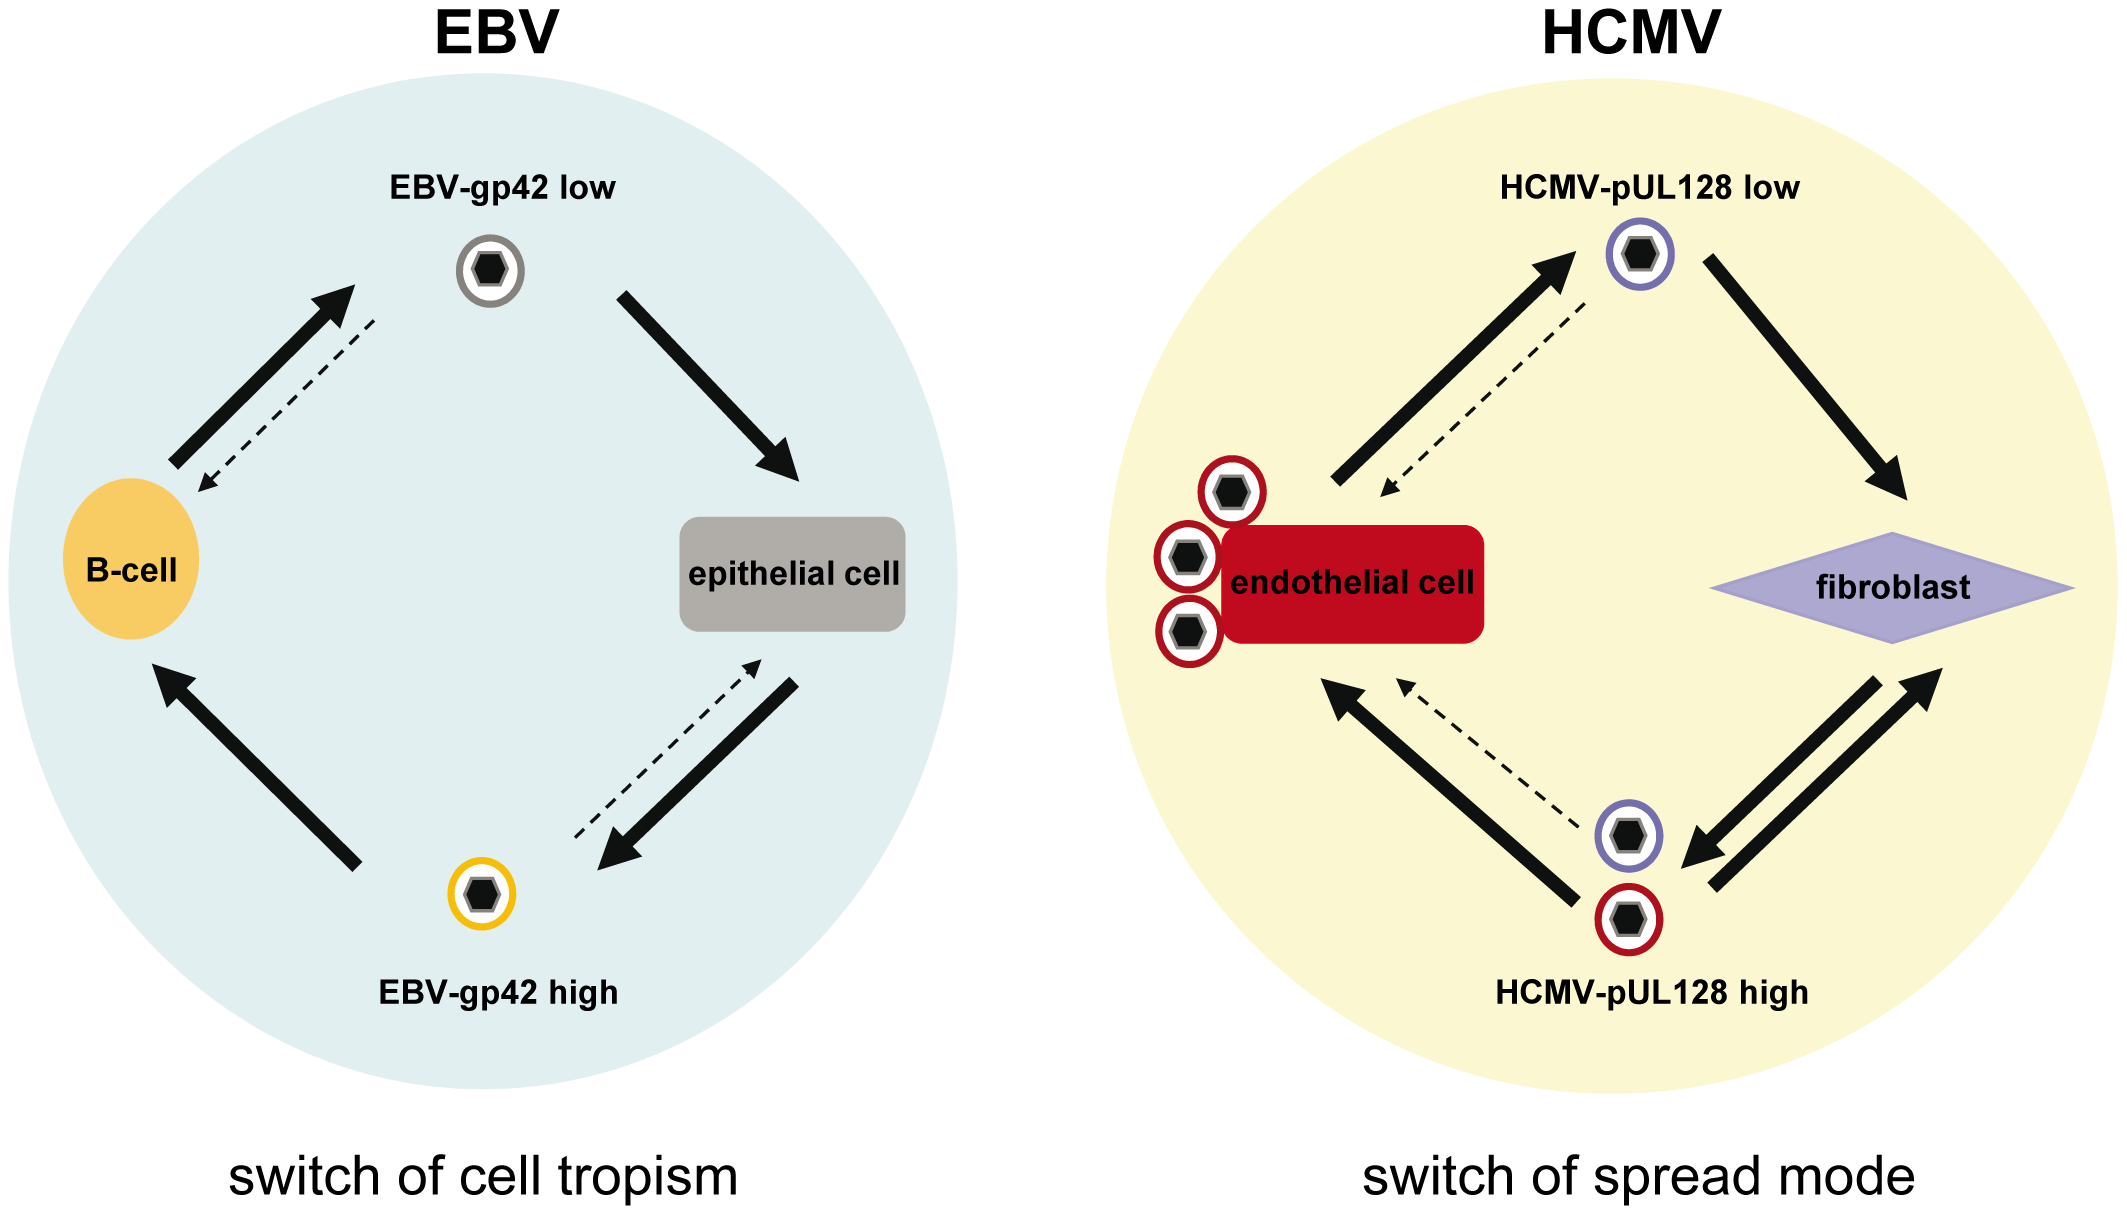 HCMV and EBV models for virus spread in cell culture.